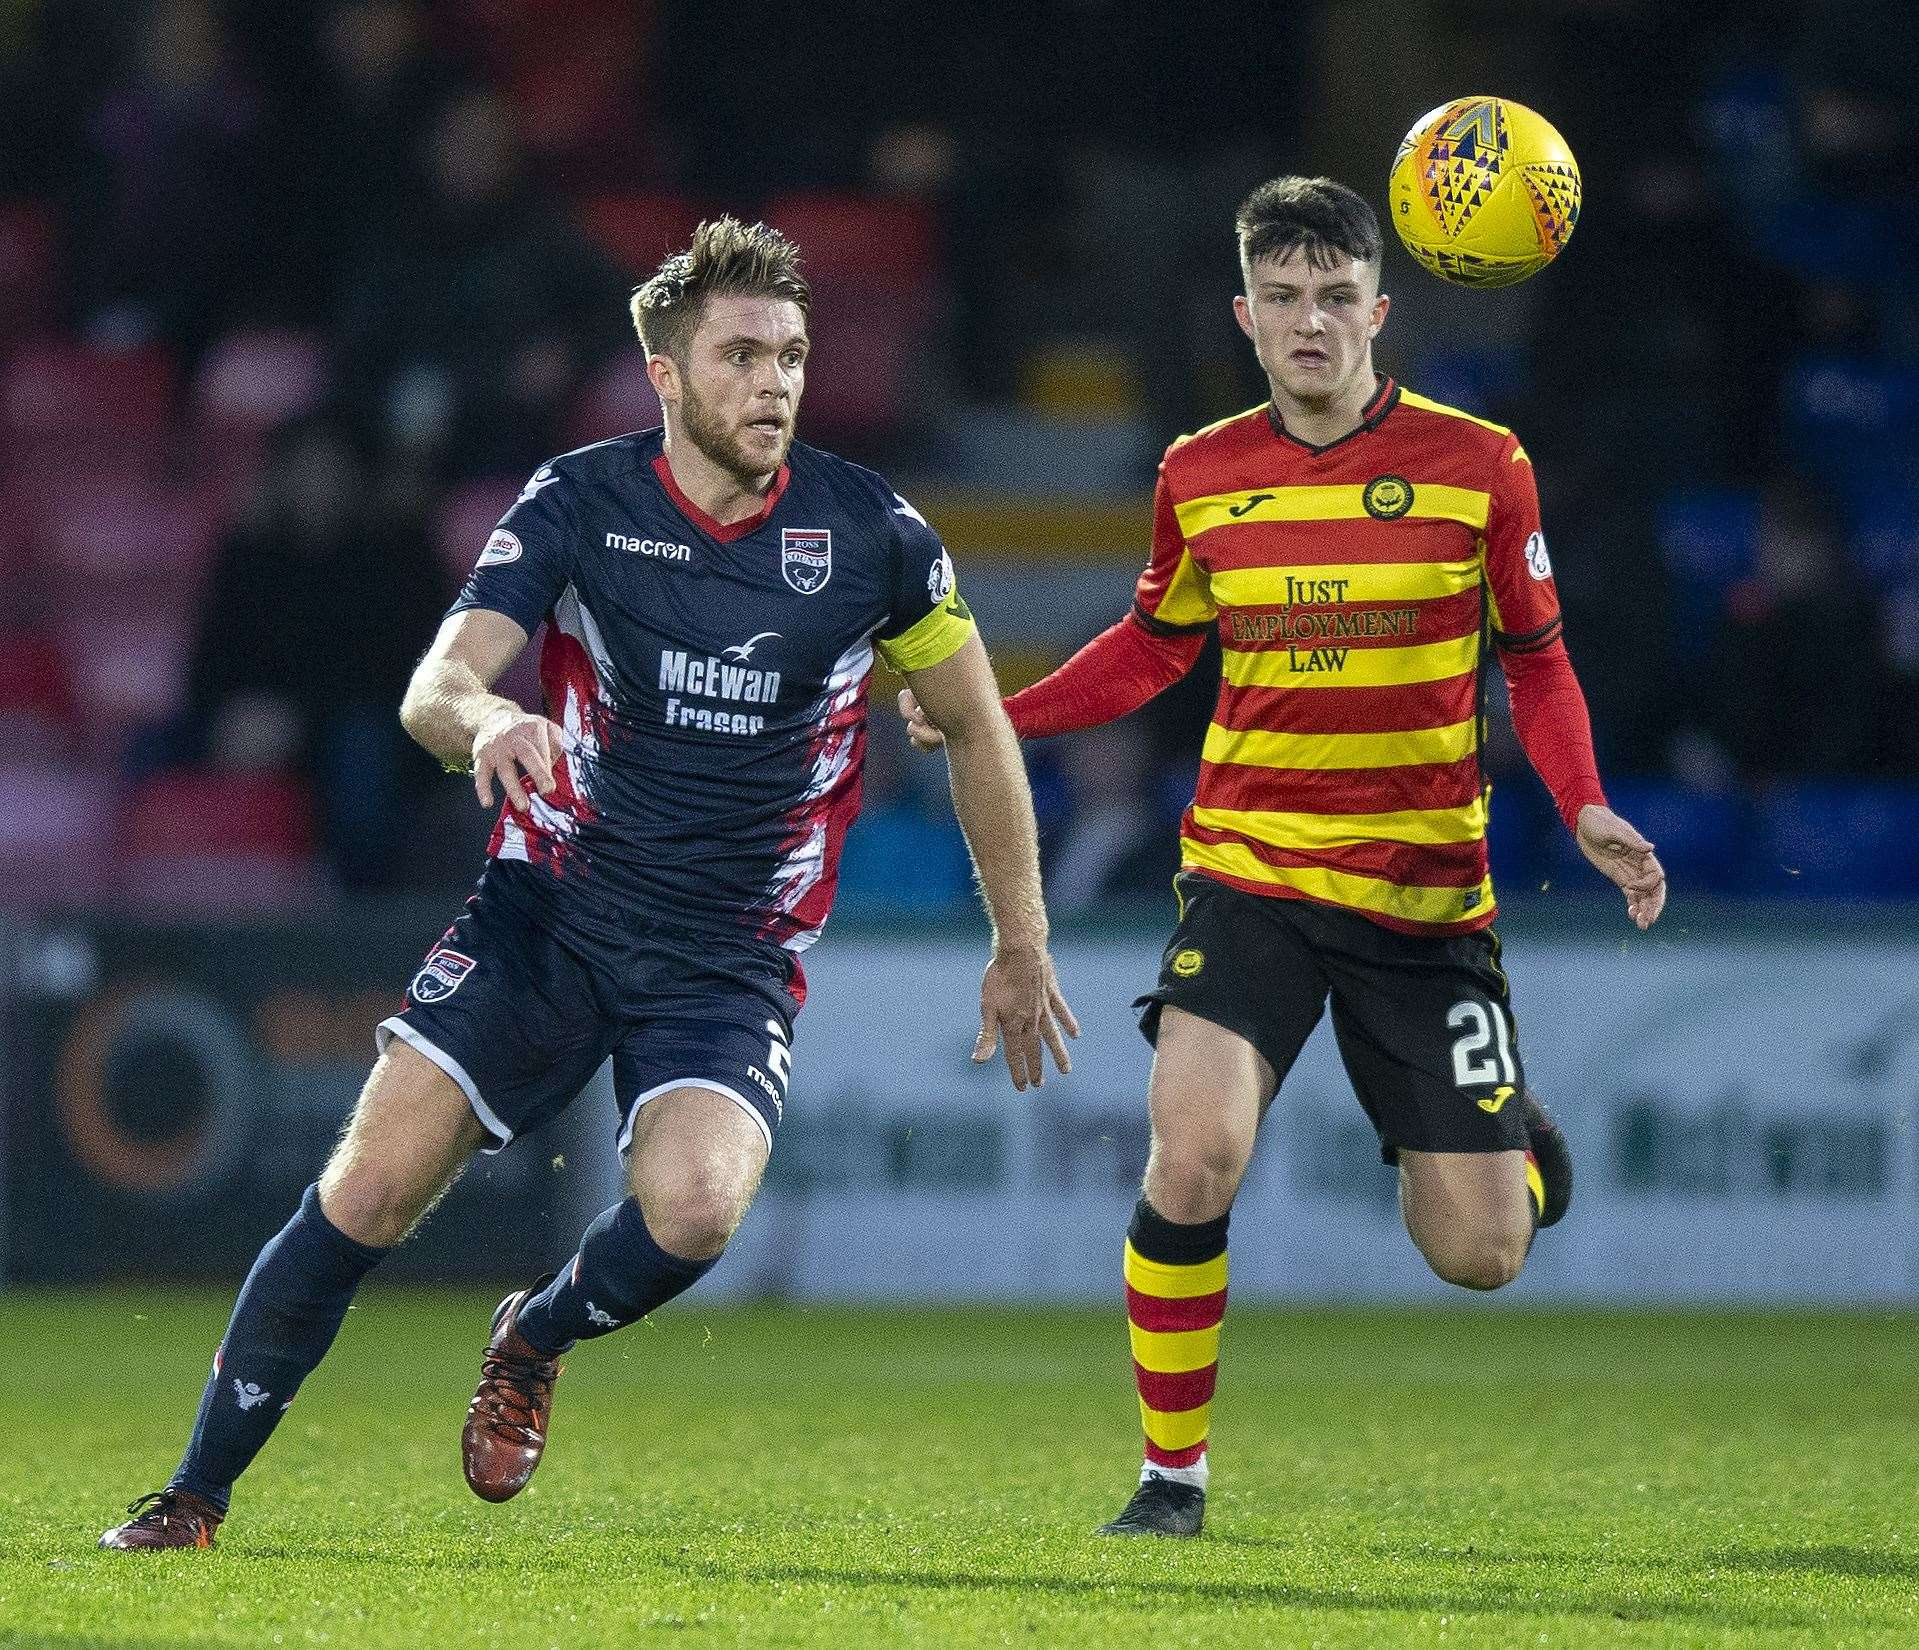 Both teams will be desperate for three points tomorrow – Ross County to move a step closer to title glory, and Partick Thistle to try and move away from relegation. Picture: Ken Macpherson